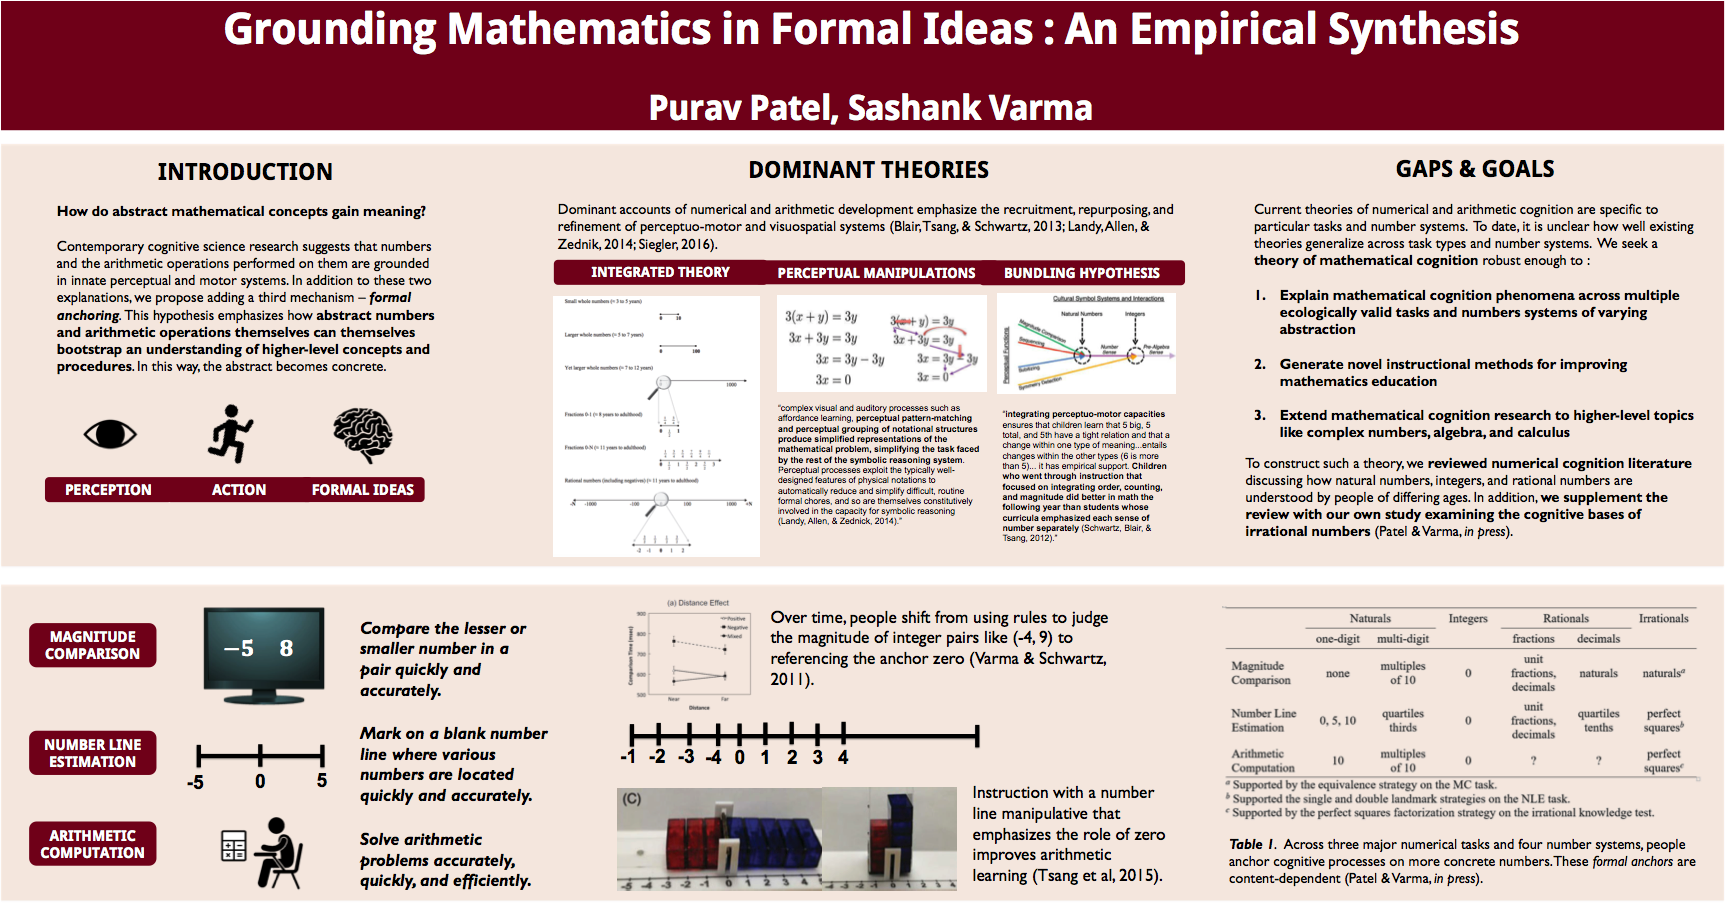 Grounding Mathematics in Formal Ideas